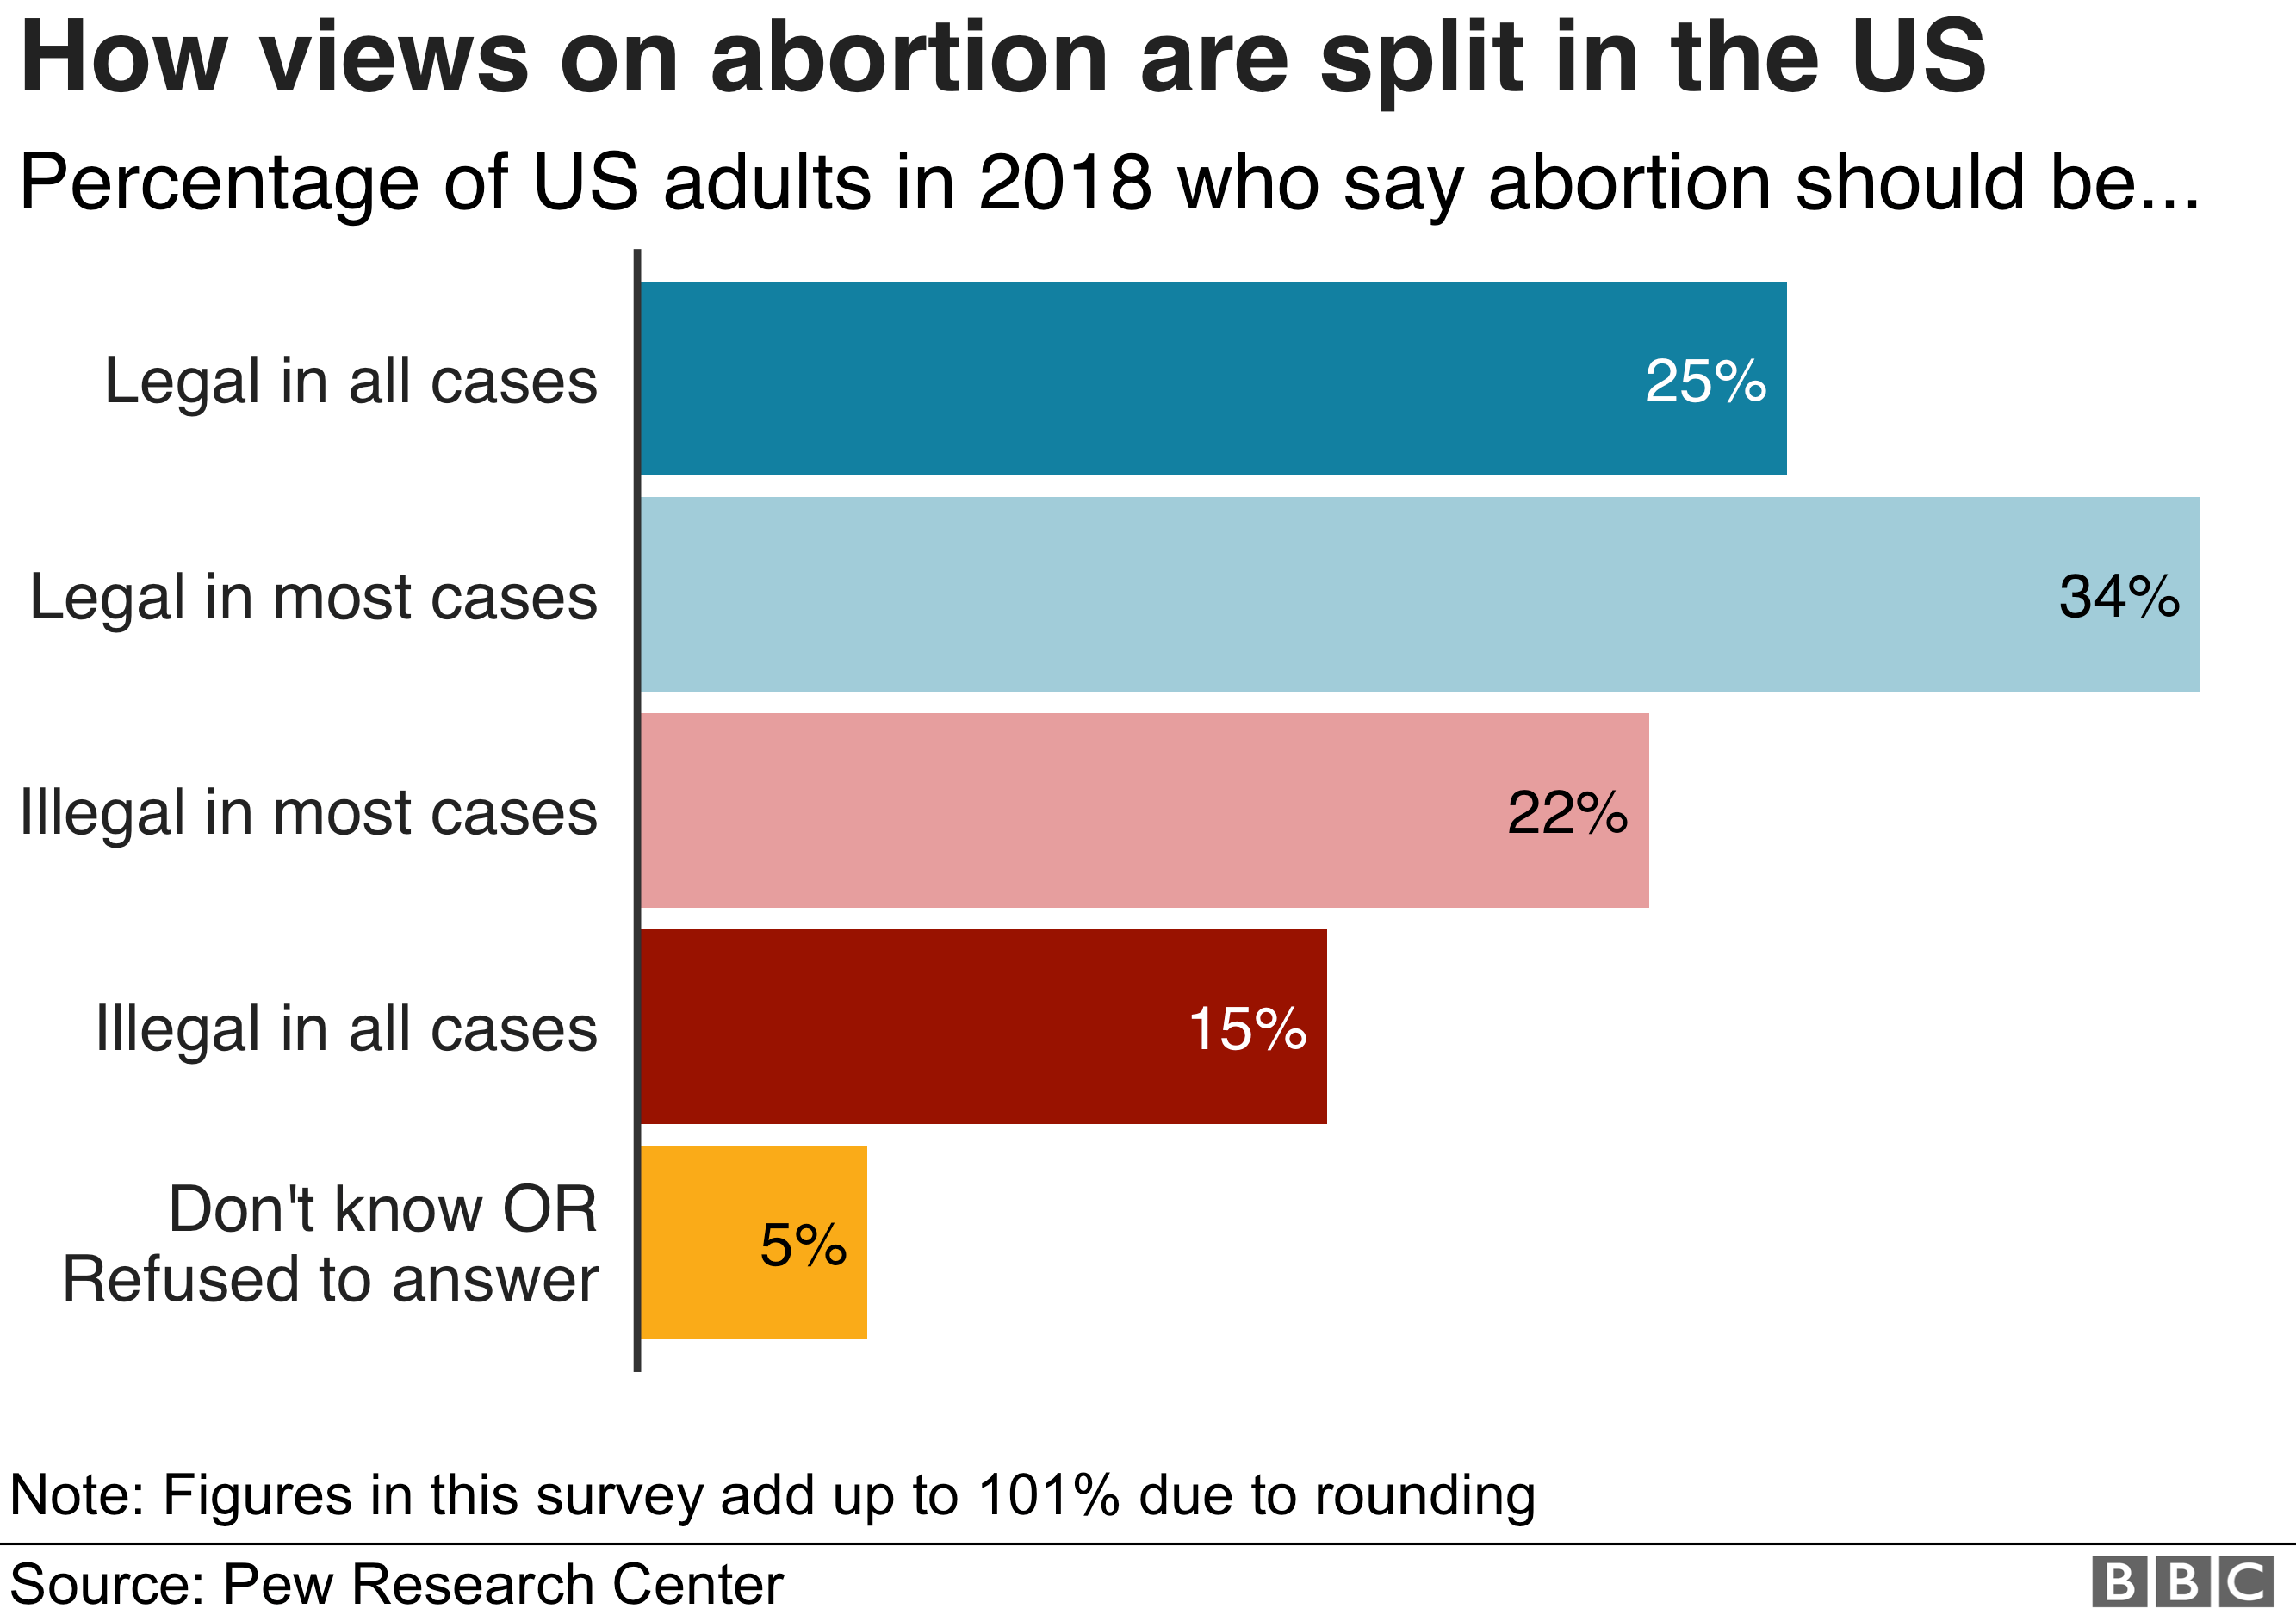 A graph showing US attitudes to abortion